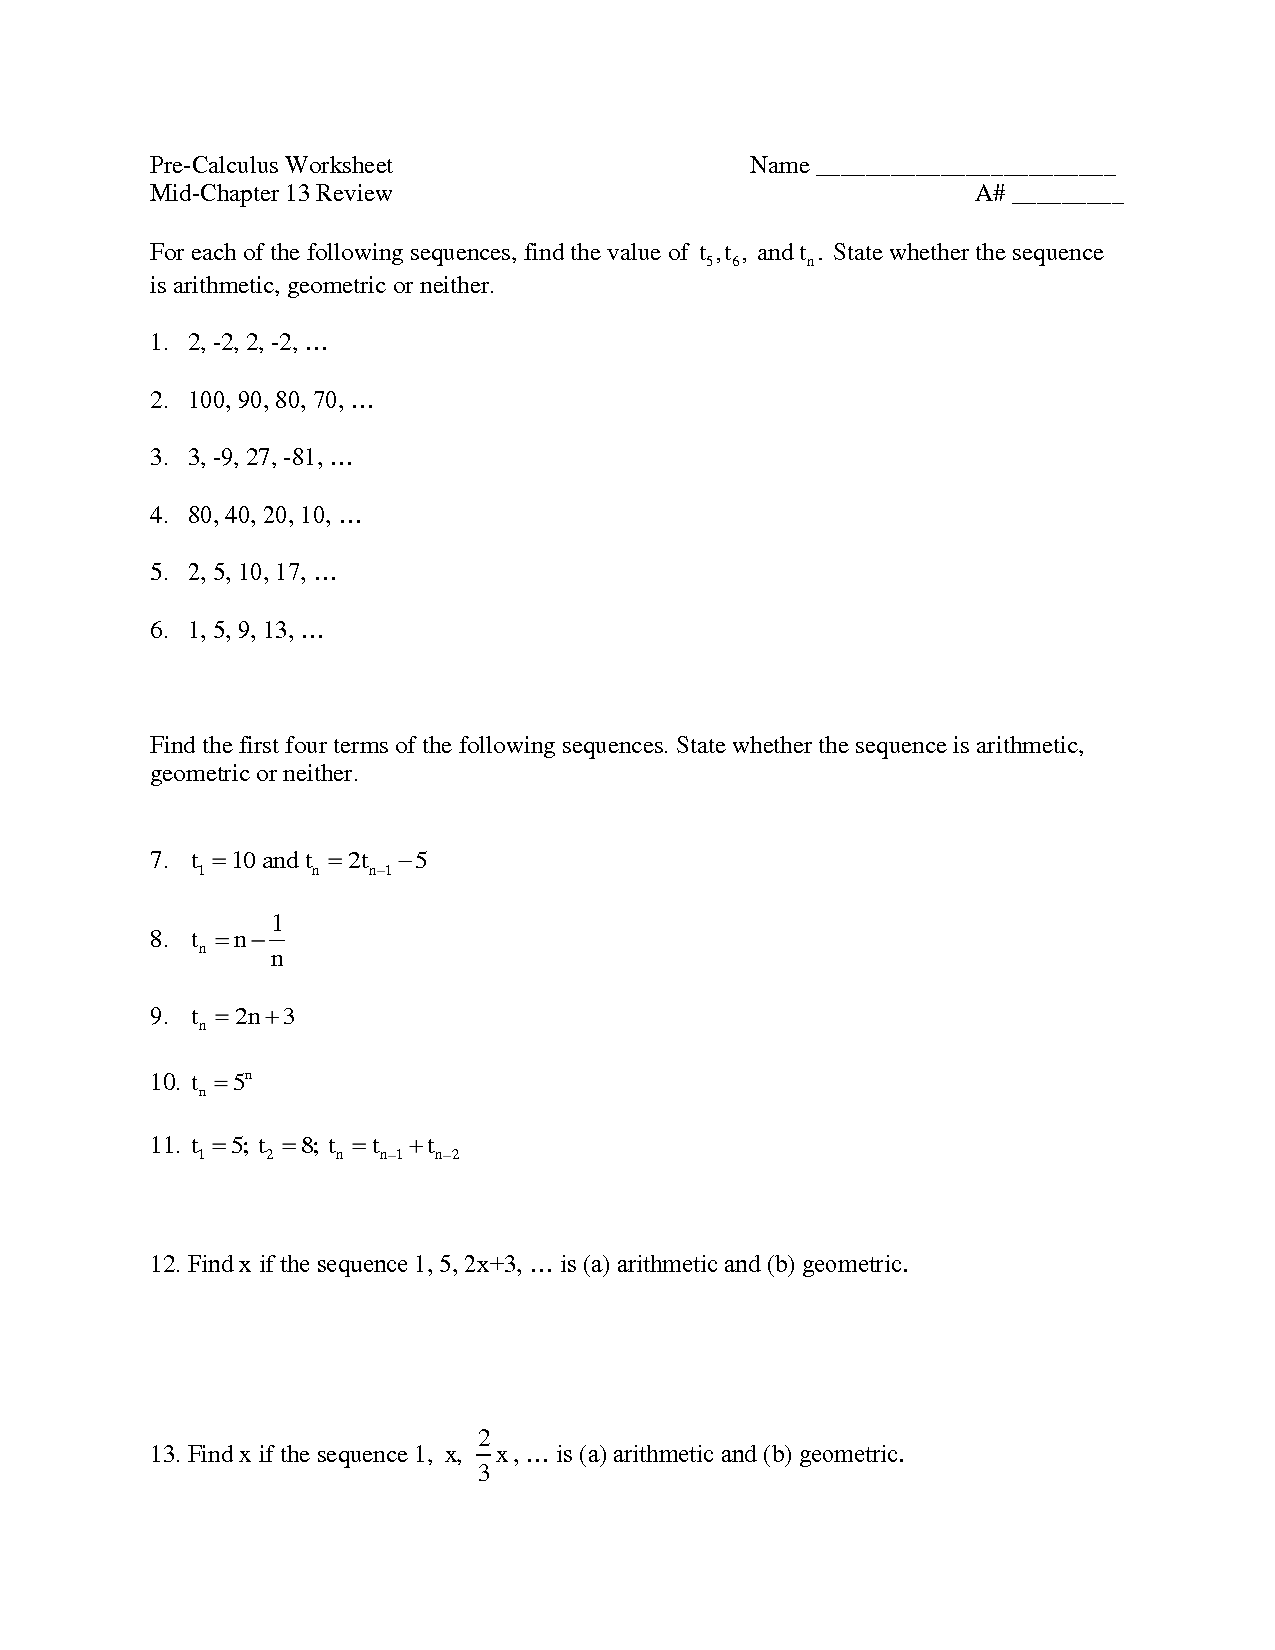 16 Best Images Of Pre Calculus Worksheets